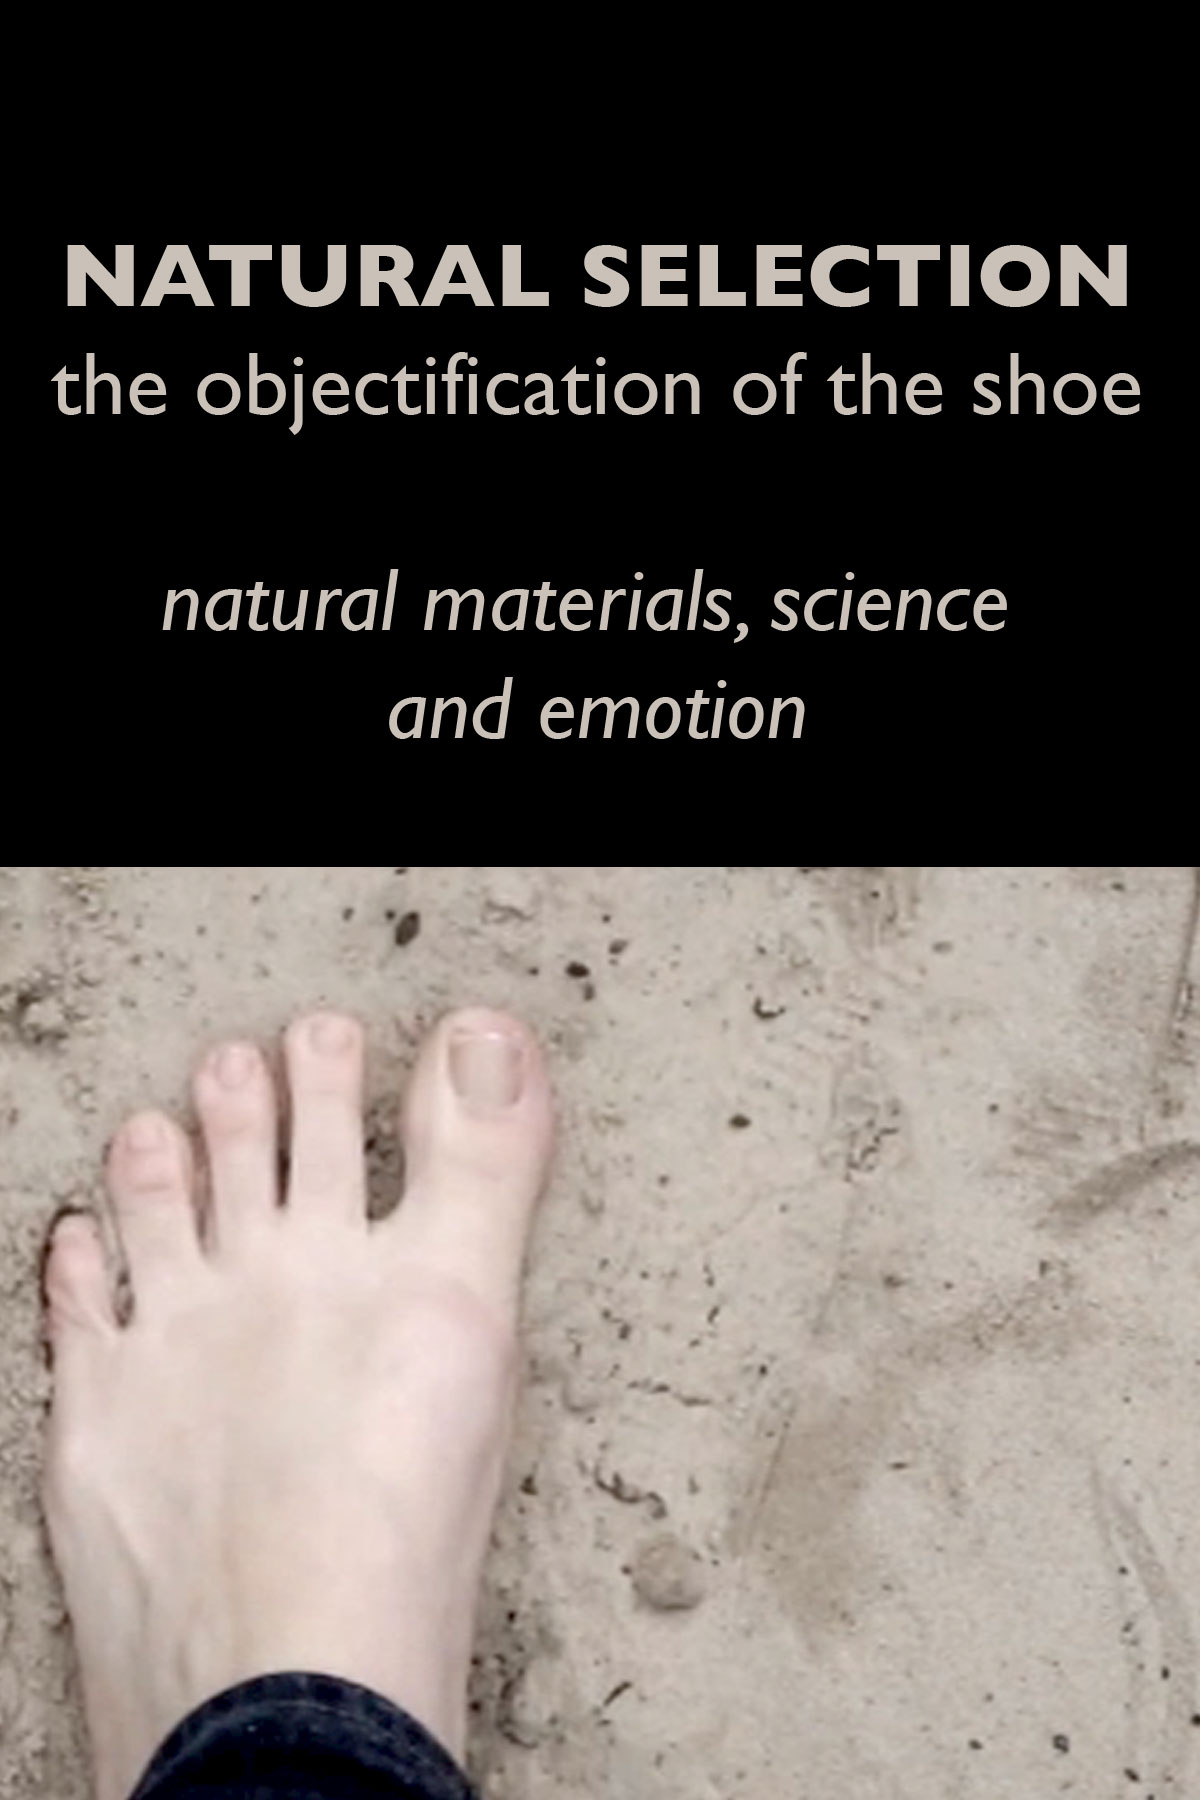 NATURAL SELECTION the objectification of the shoe